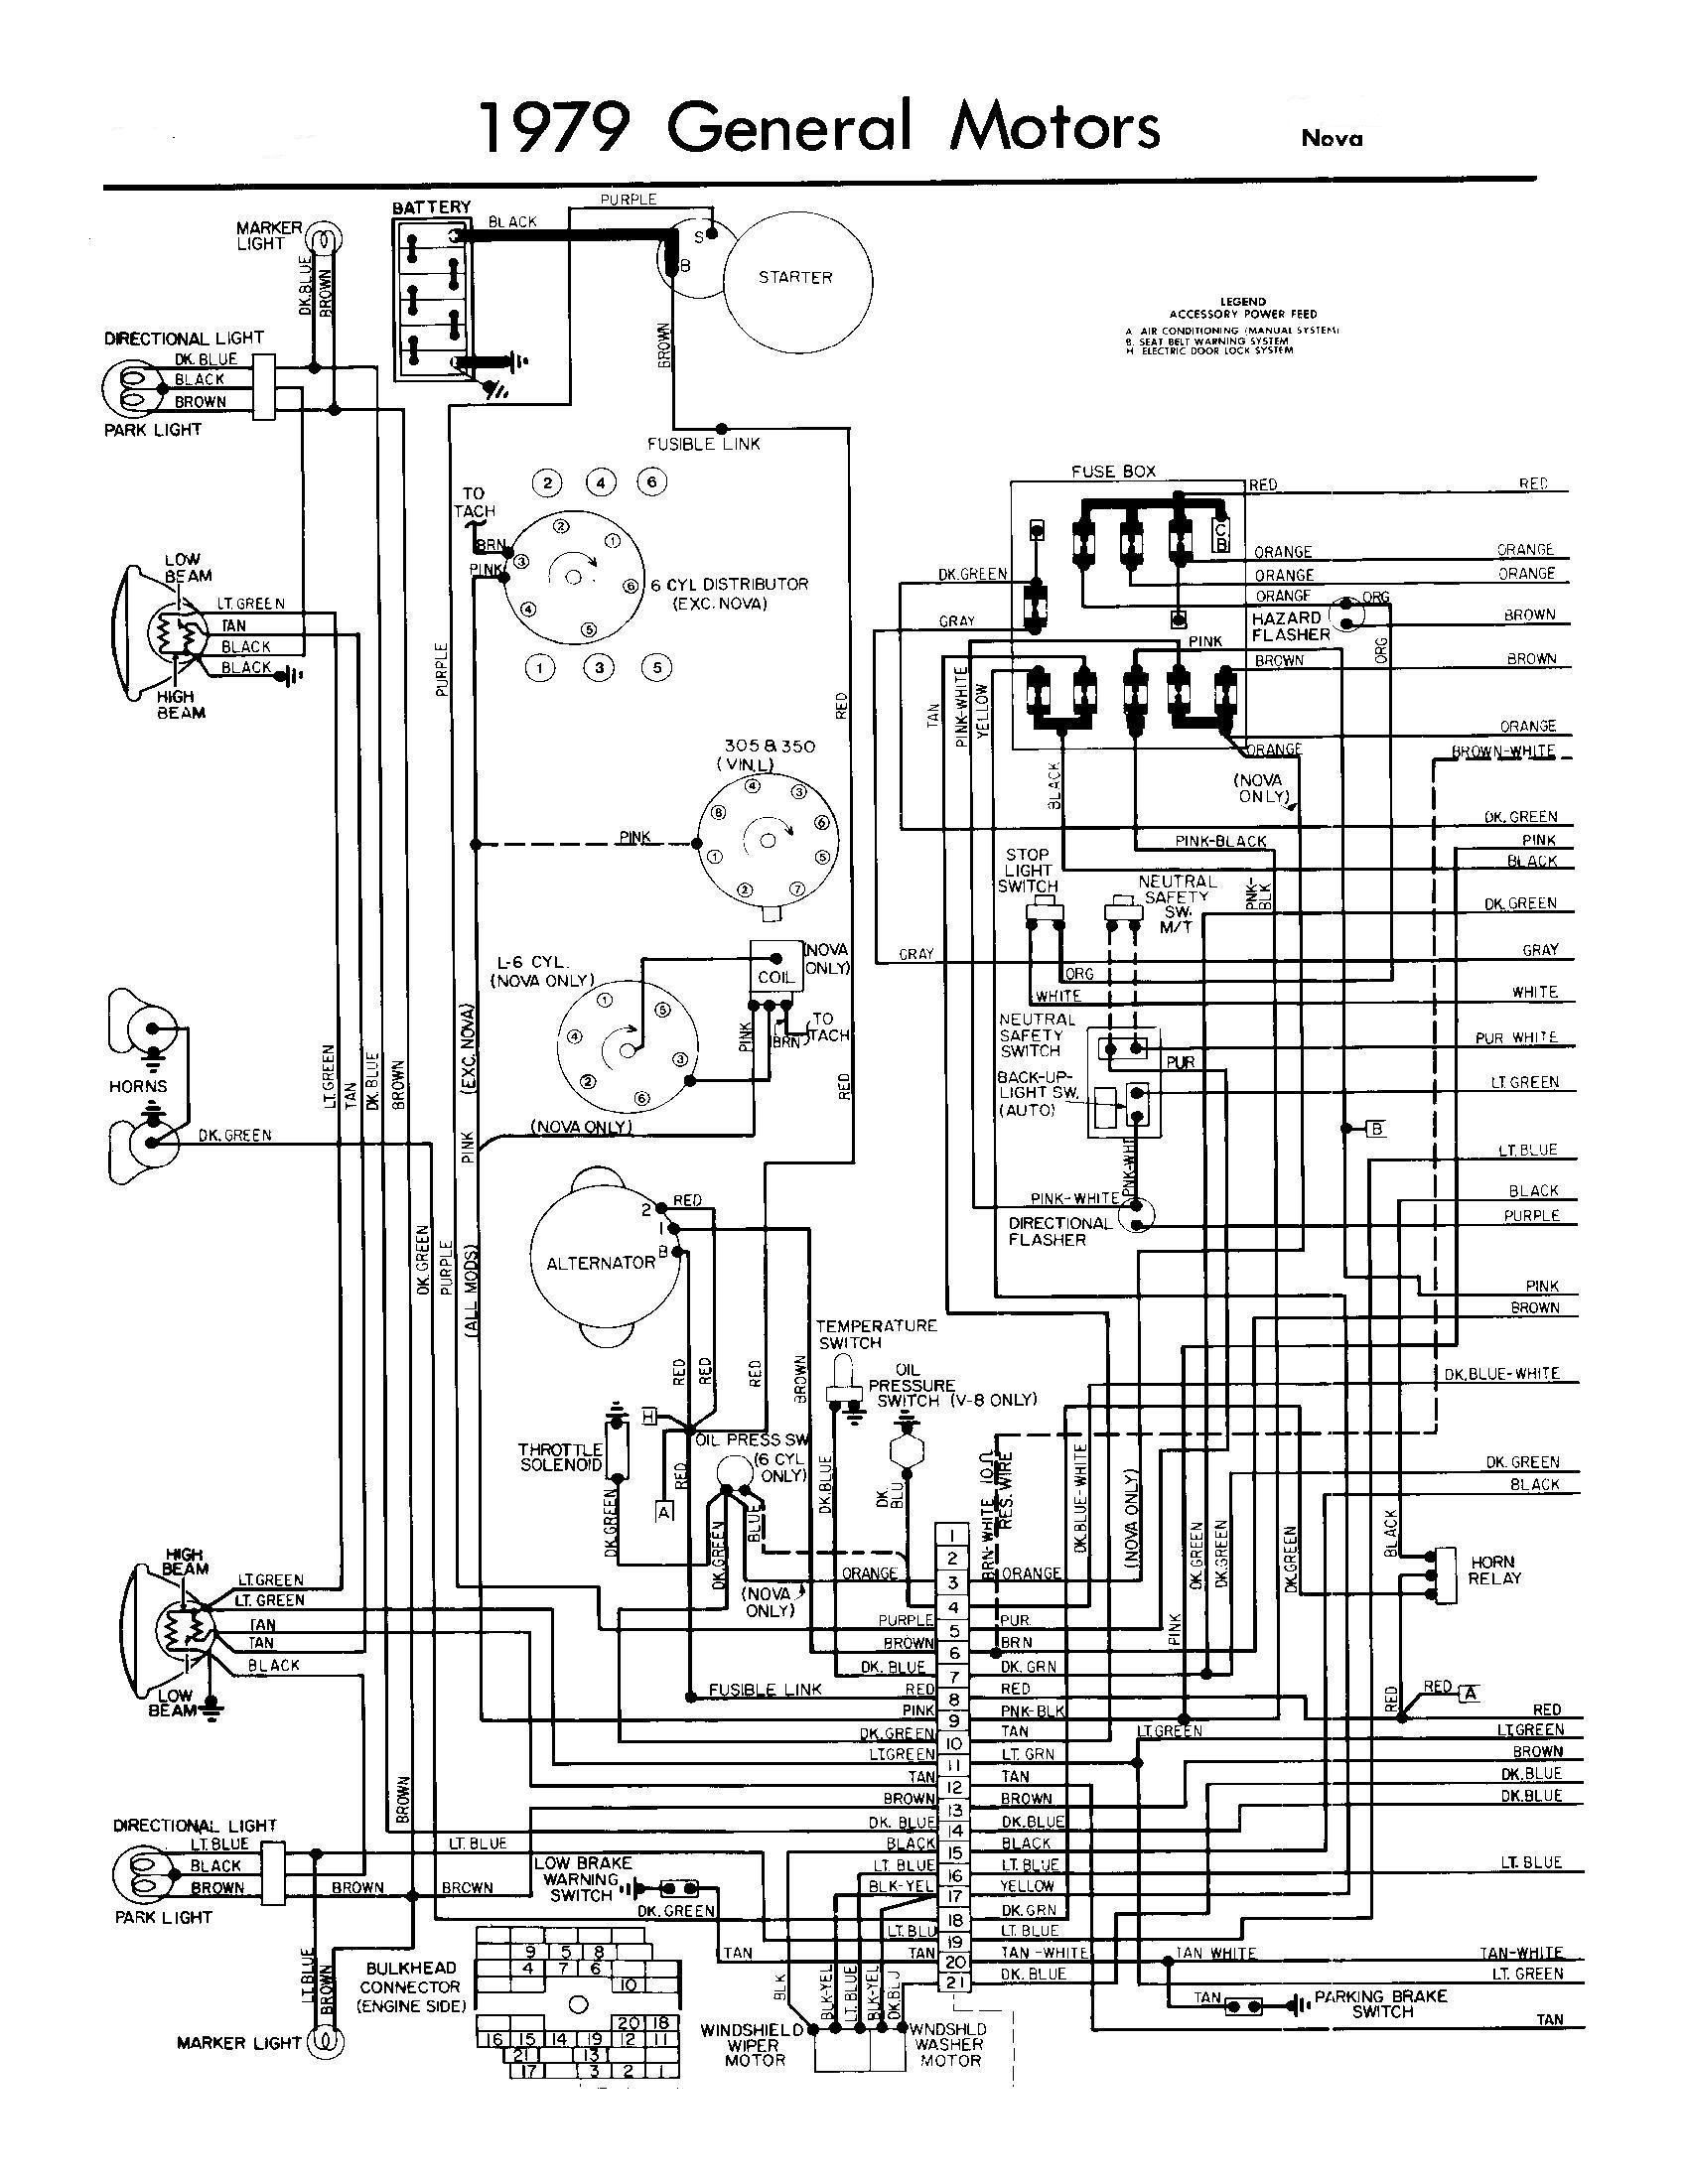 1998 chevy truck fuse box diagram 70 chevy truck fuse box diagram